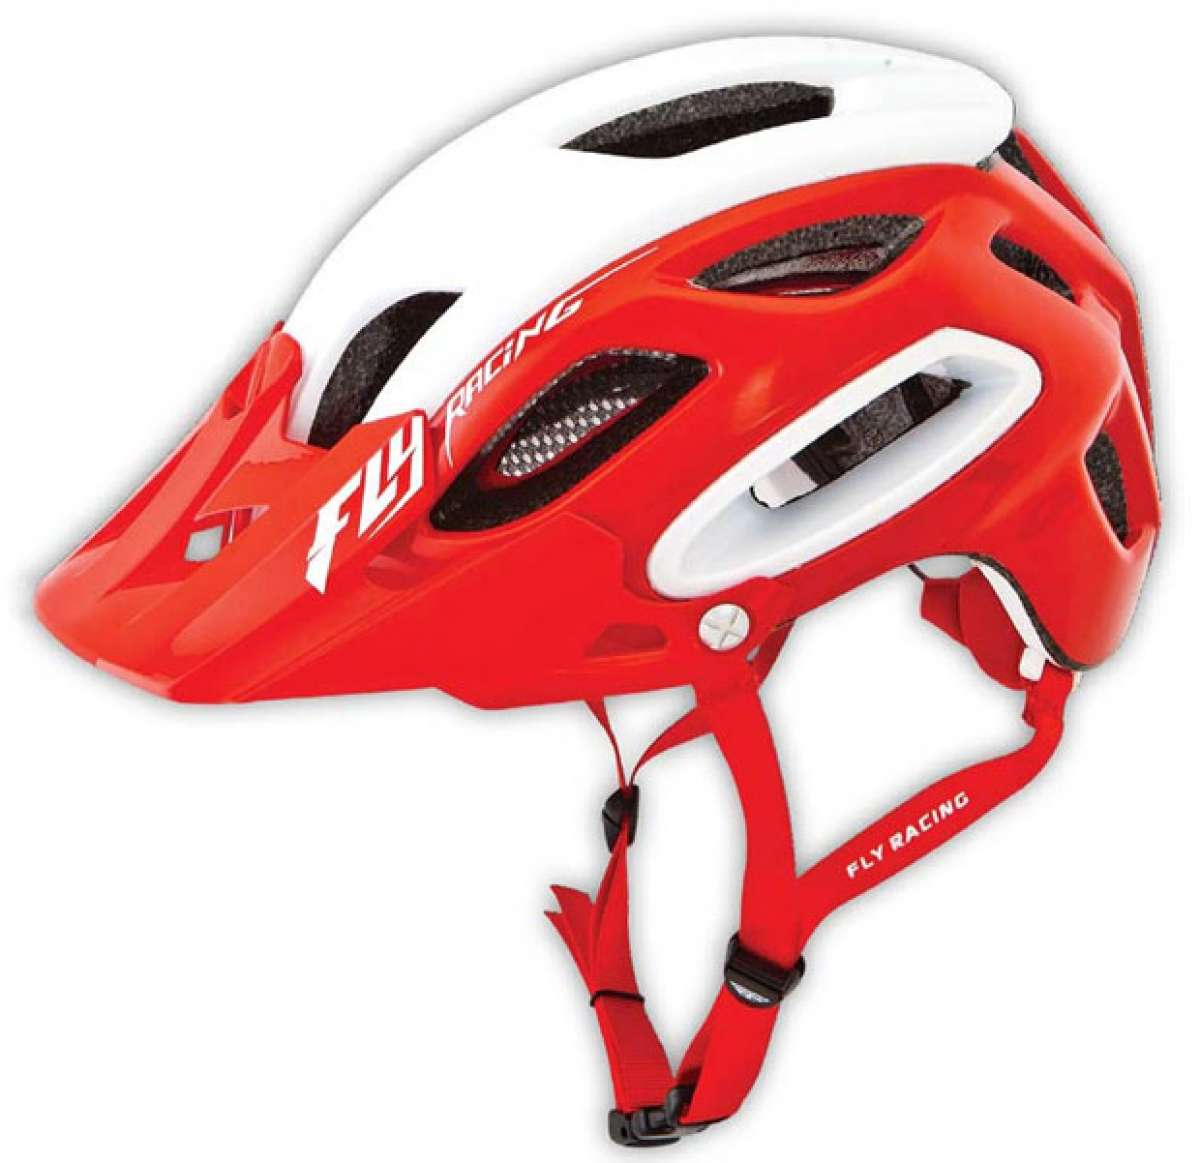 Fly Racing Freestone: El primer (y nuevo) casco para XC/Enduro de Fly Racing